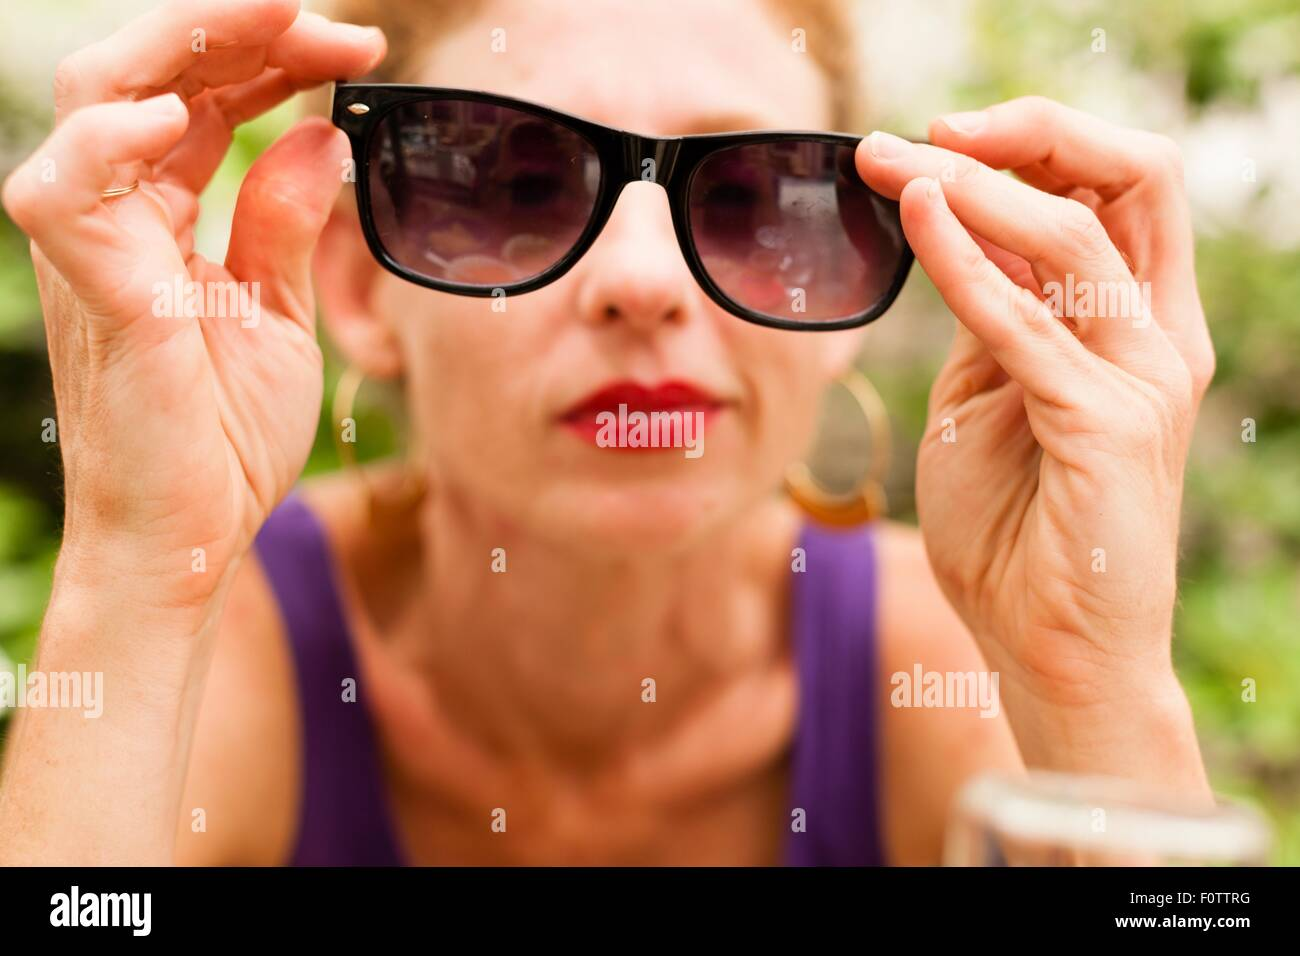 Mid adult woman holding sunglasses in front of her eyes - Stock Image